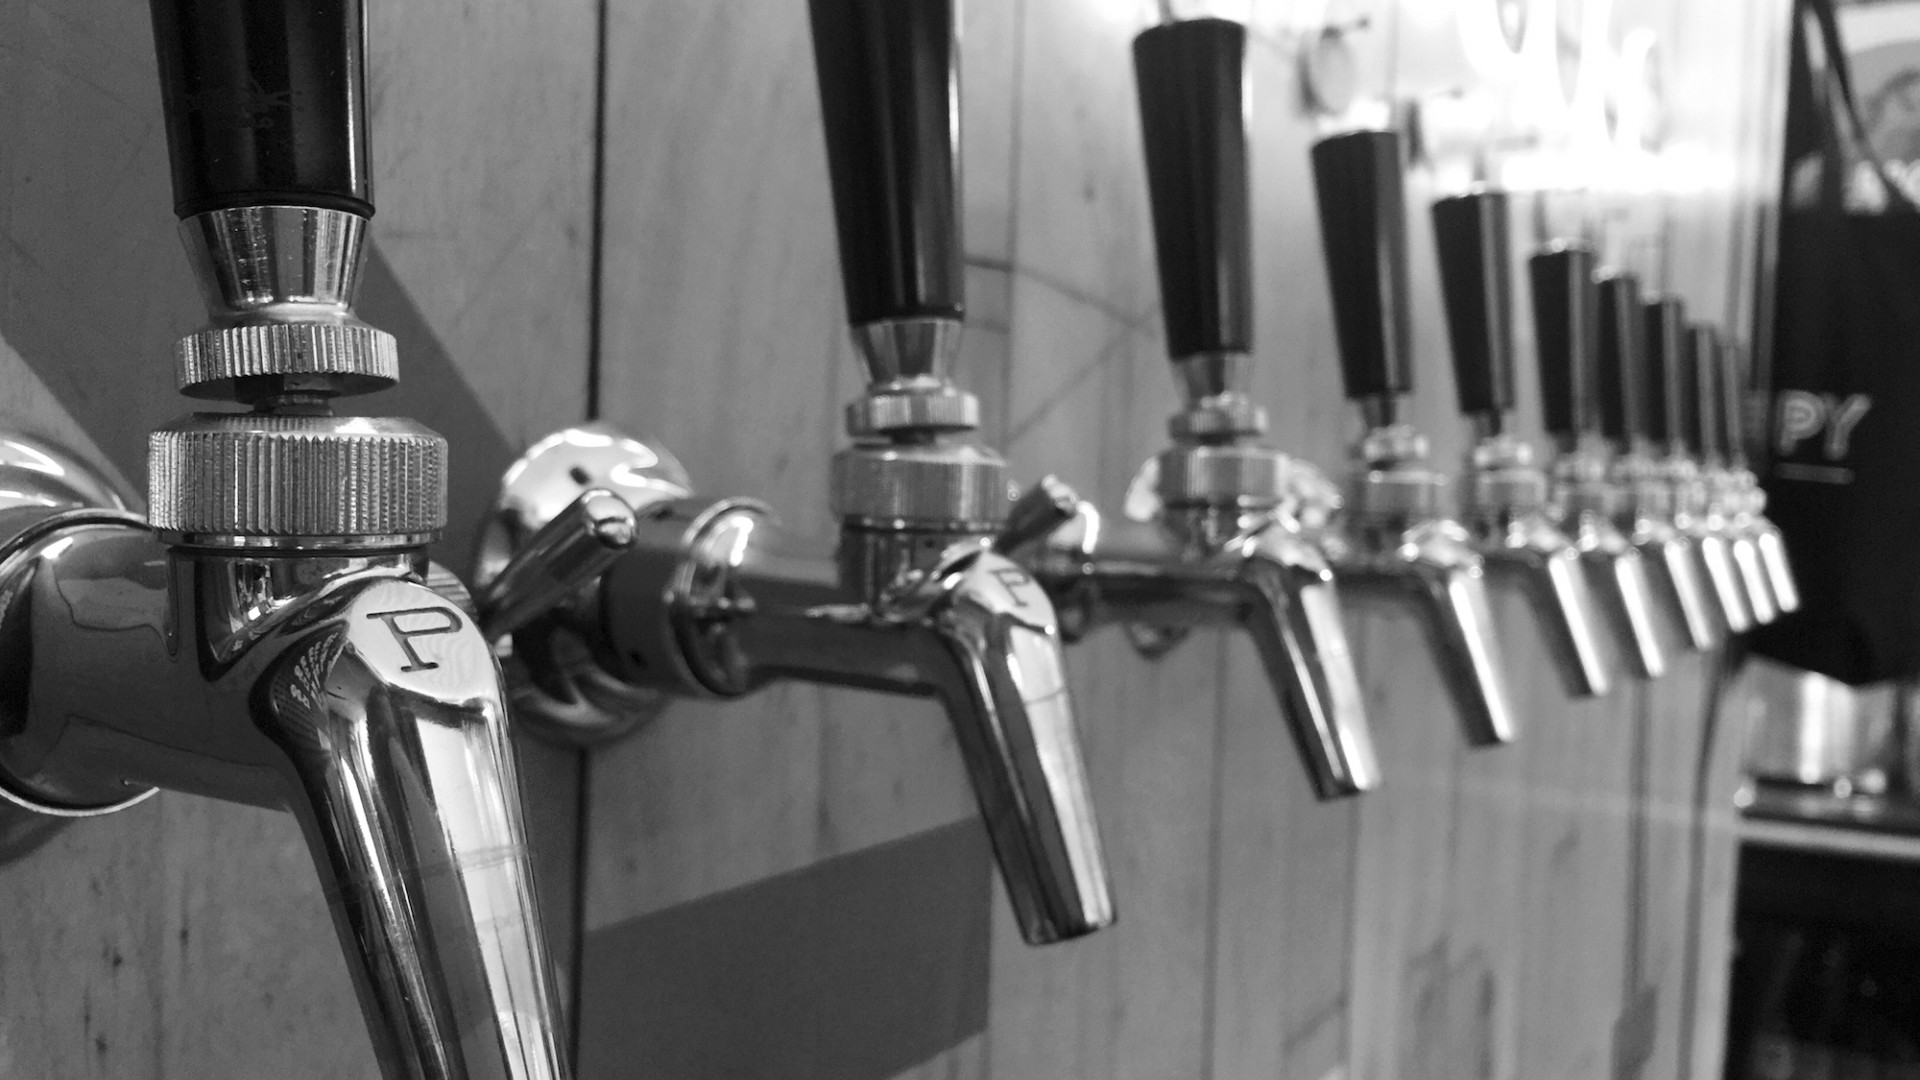 Taps at Canopy Beer Co, London